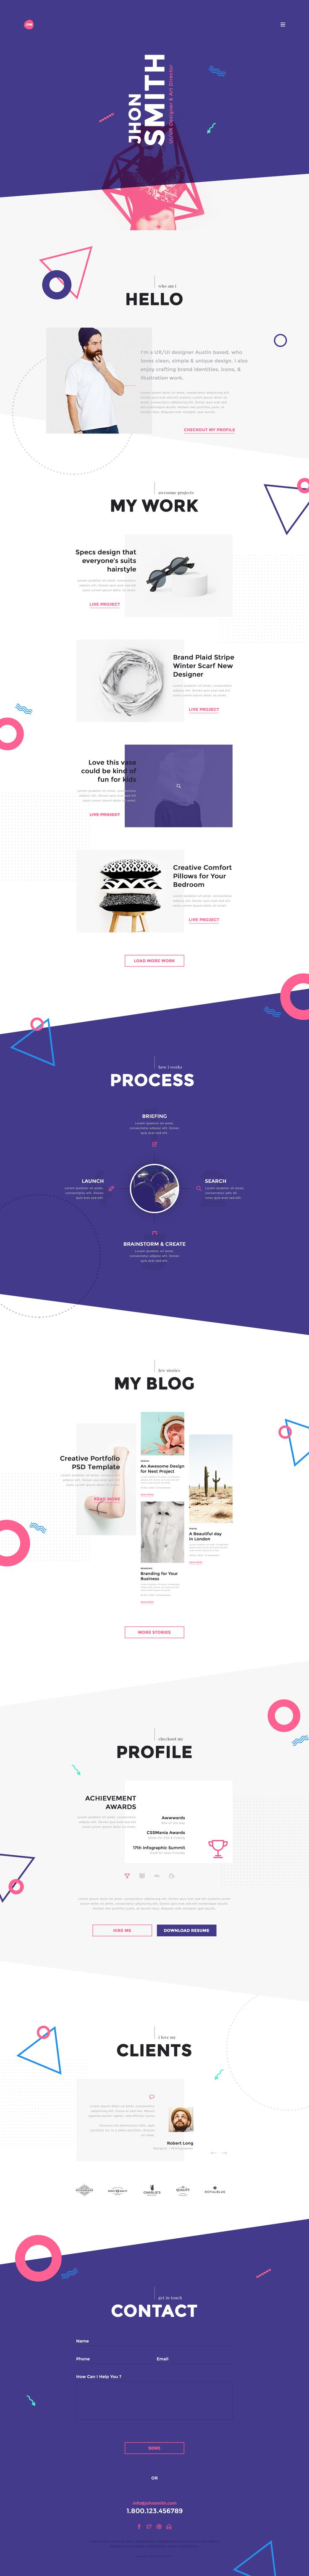 Me is a one page & Multi Pages psd portfolio & CV / Resume templates for Designer, Developer, Freelancer Artist, Photographer & Can be use for Personal Pages.